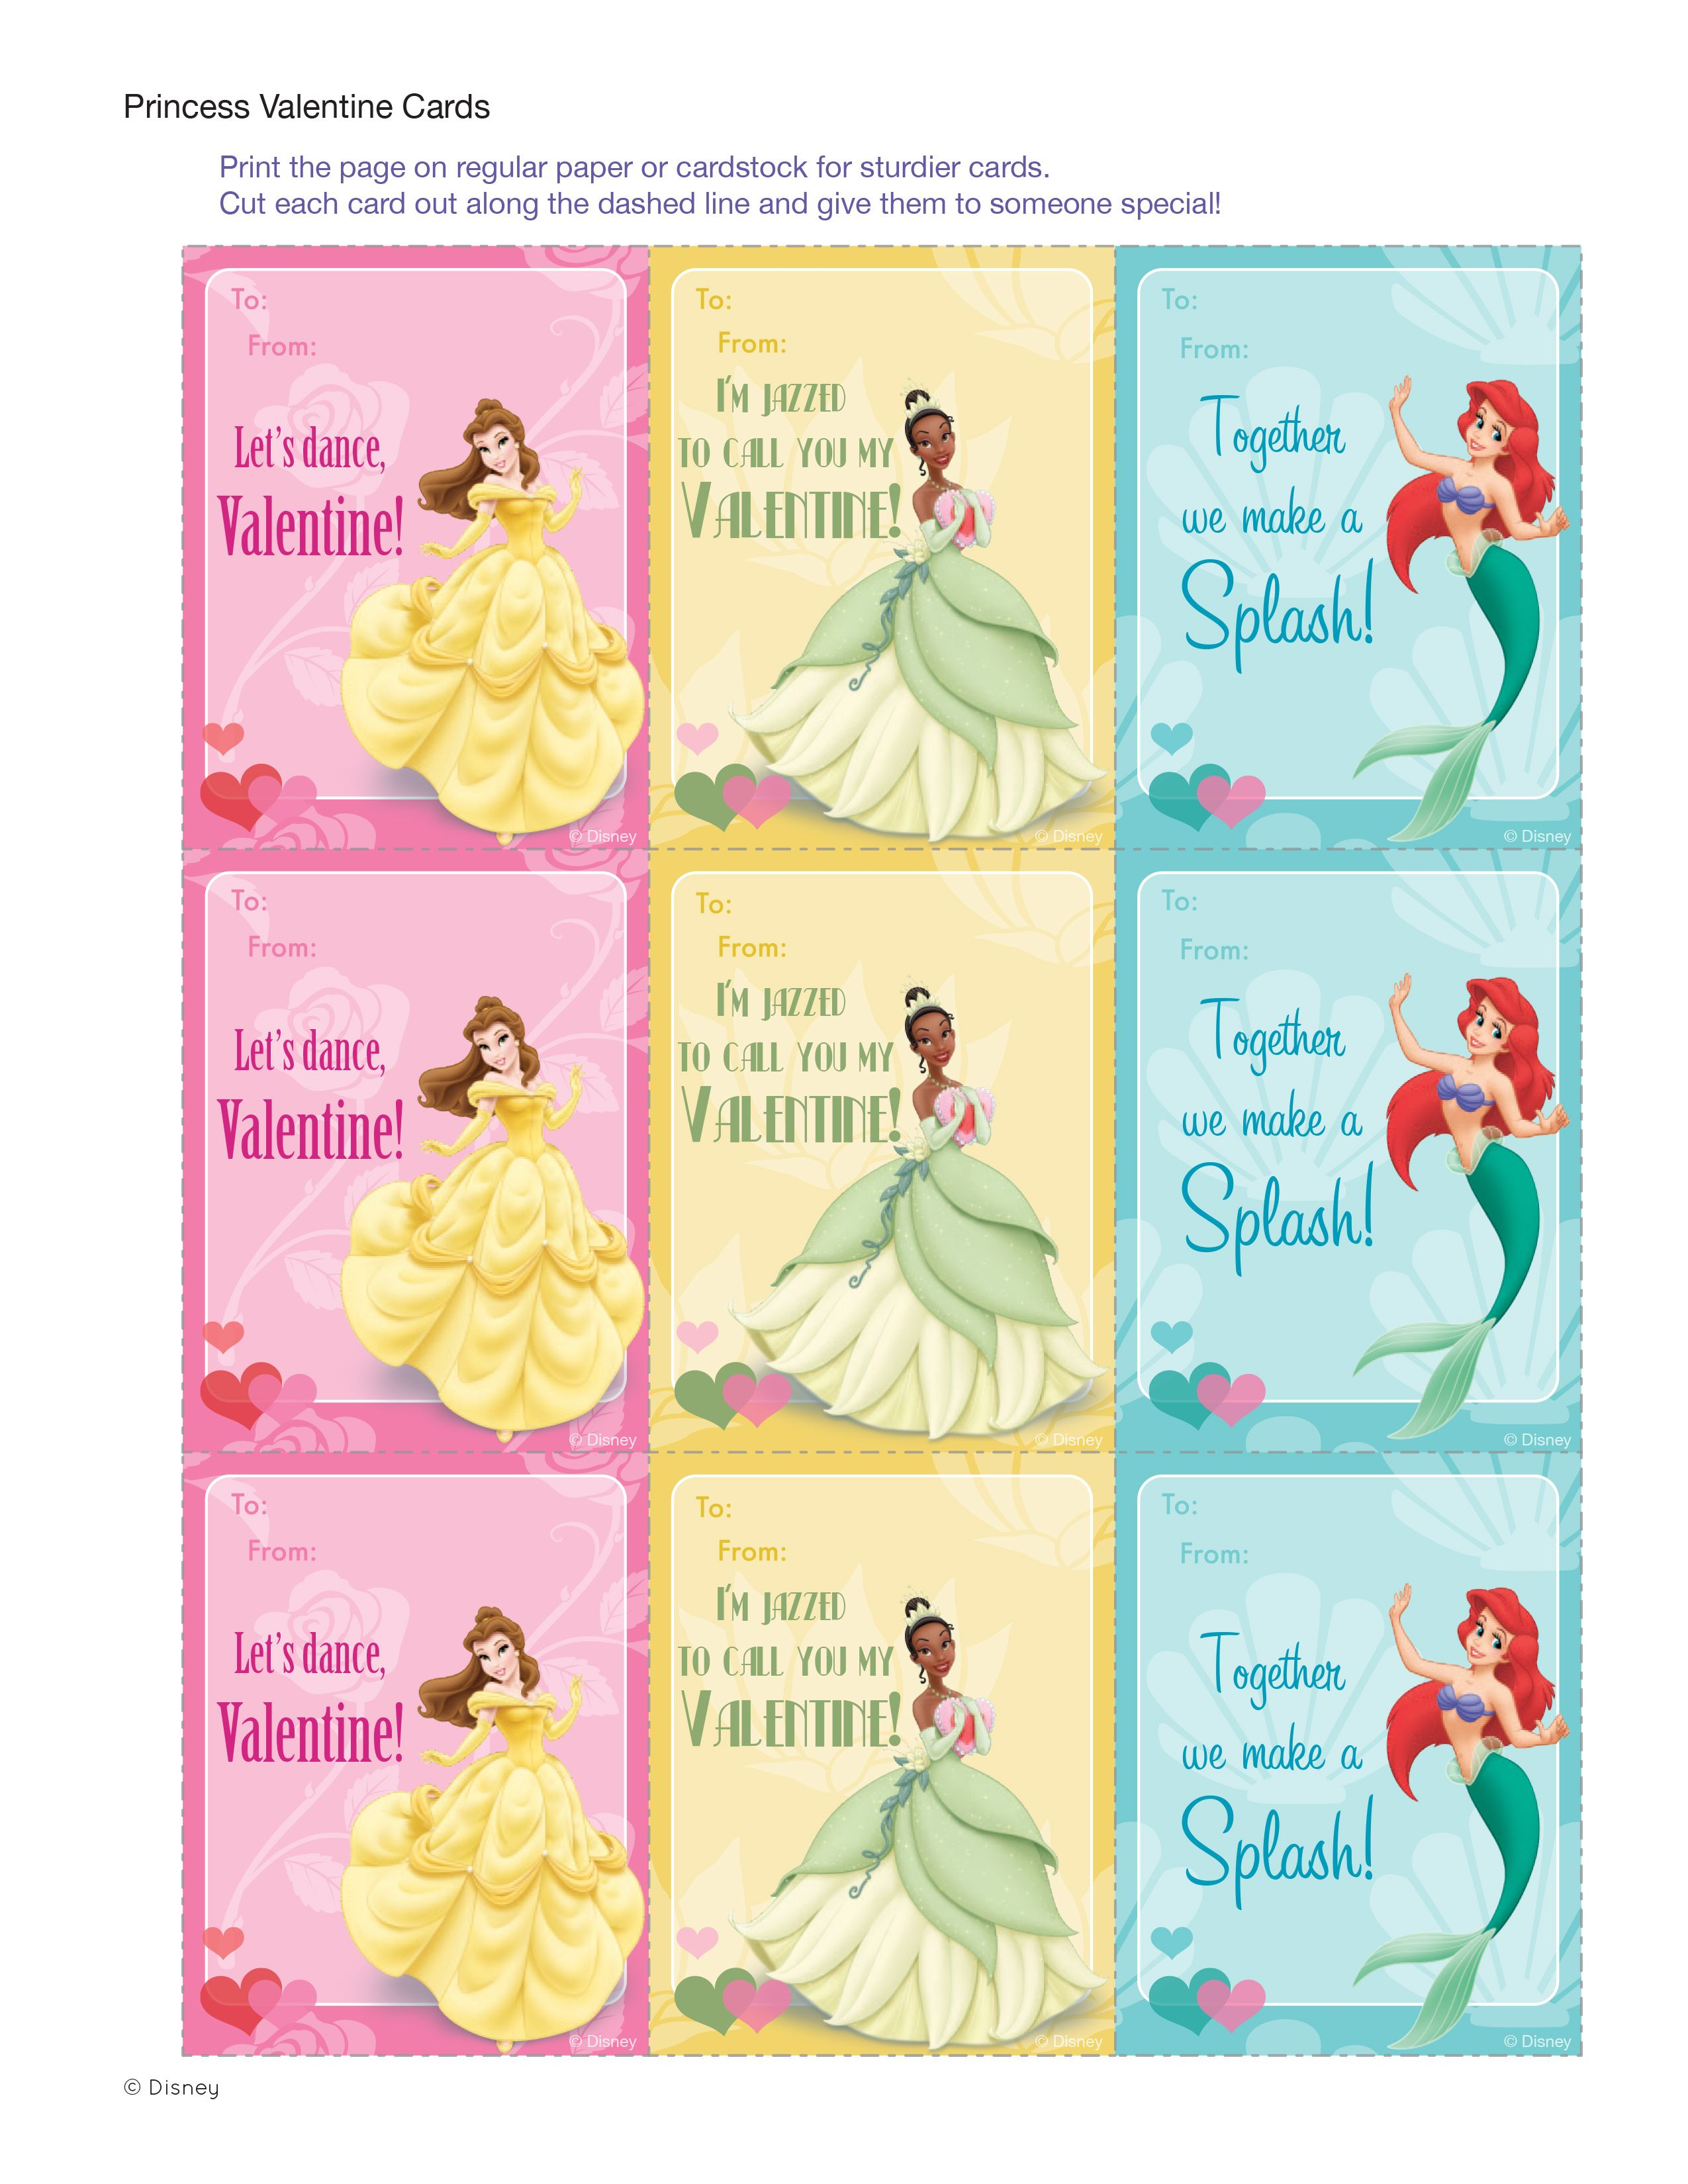 disney princess valentine cards daughter in a nutshell pinterest